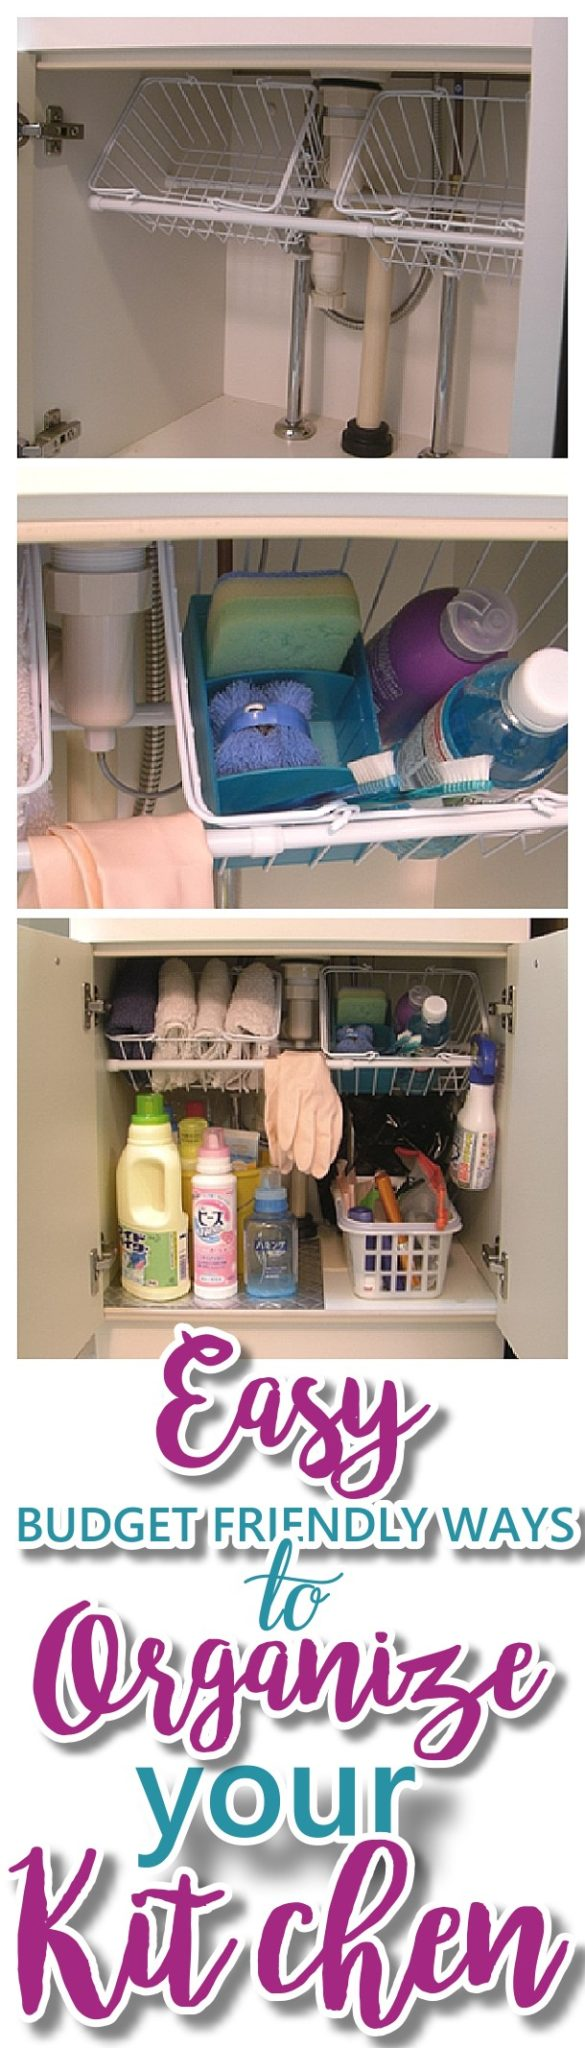 EASY Budget Friendly Ways To Organize Your Kitchen   The Very Best CHEAP,  Quick Tips